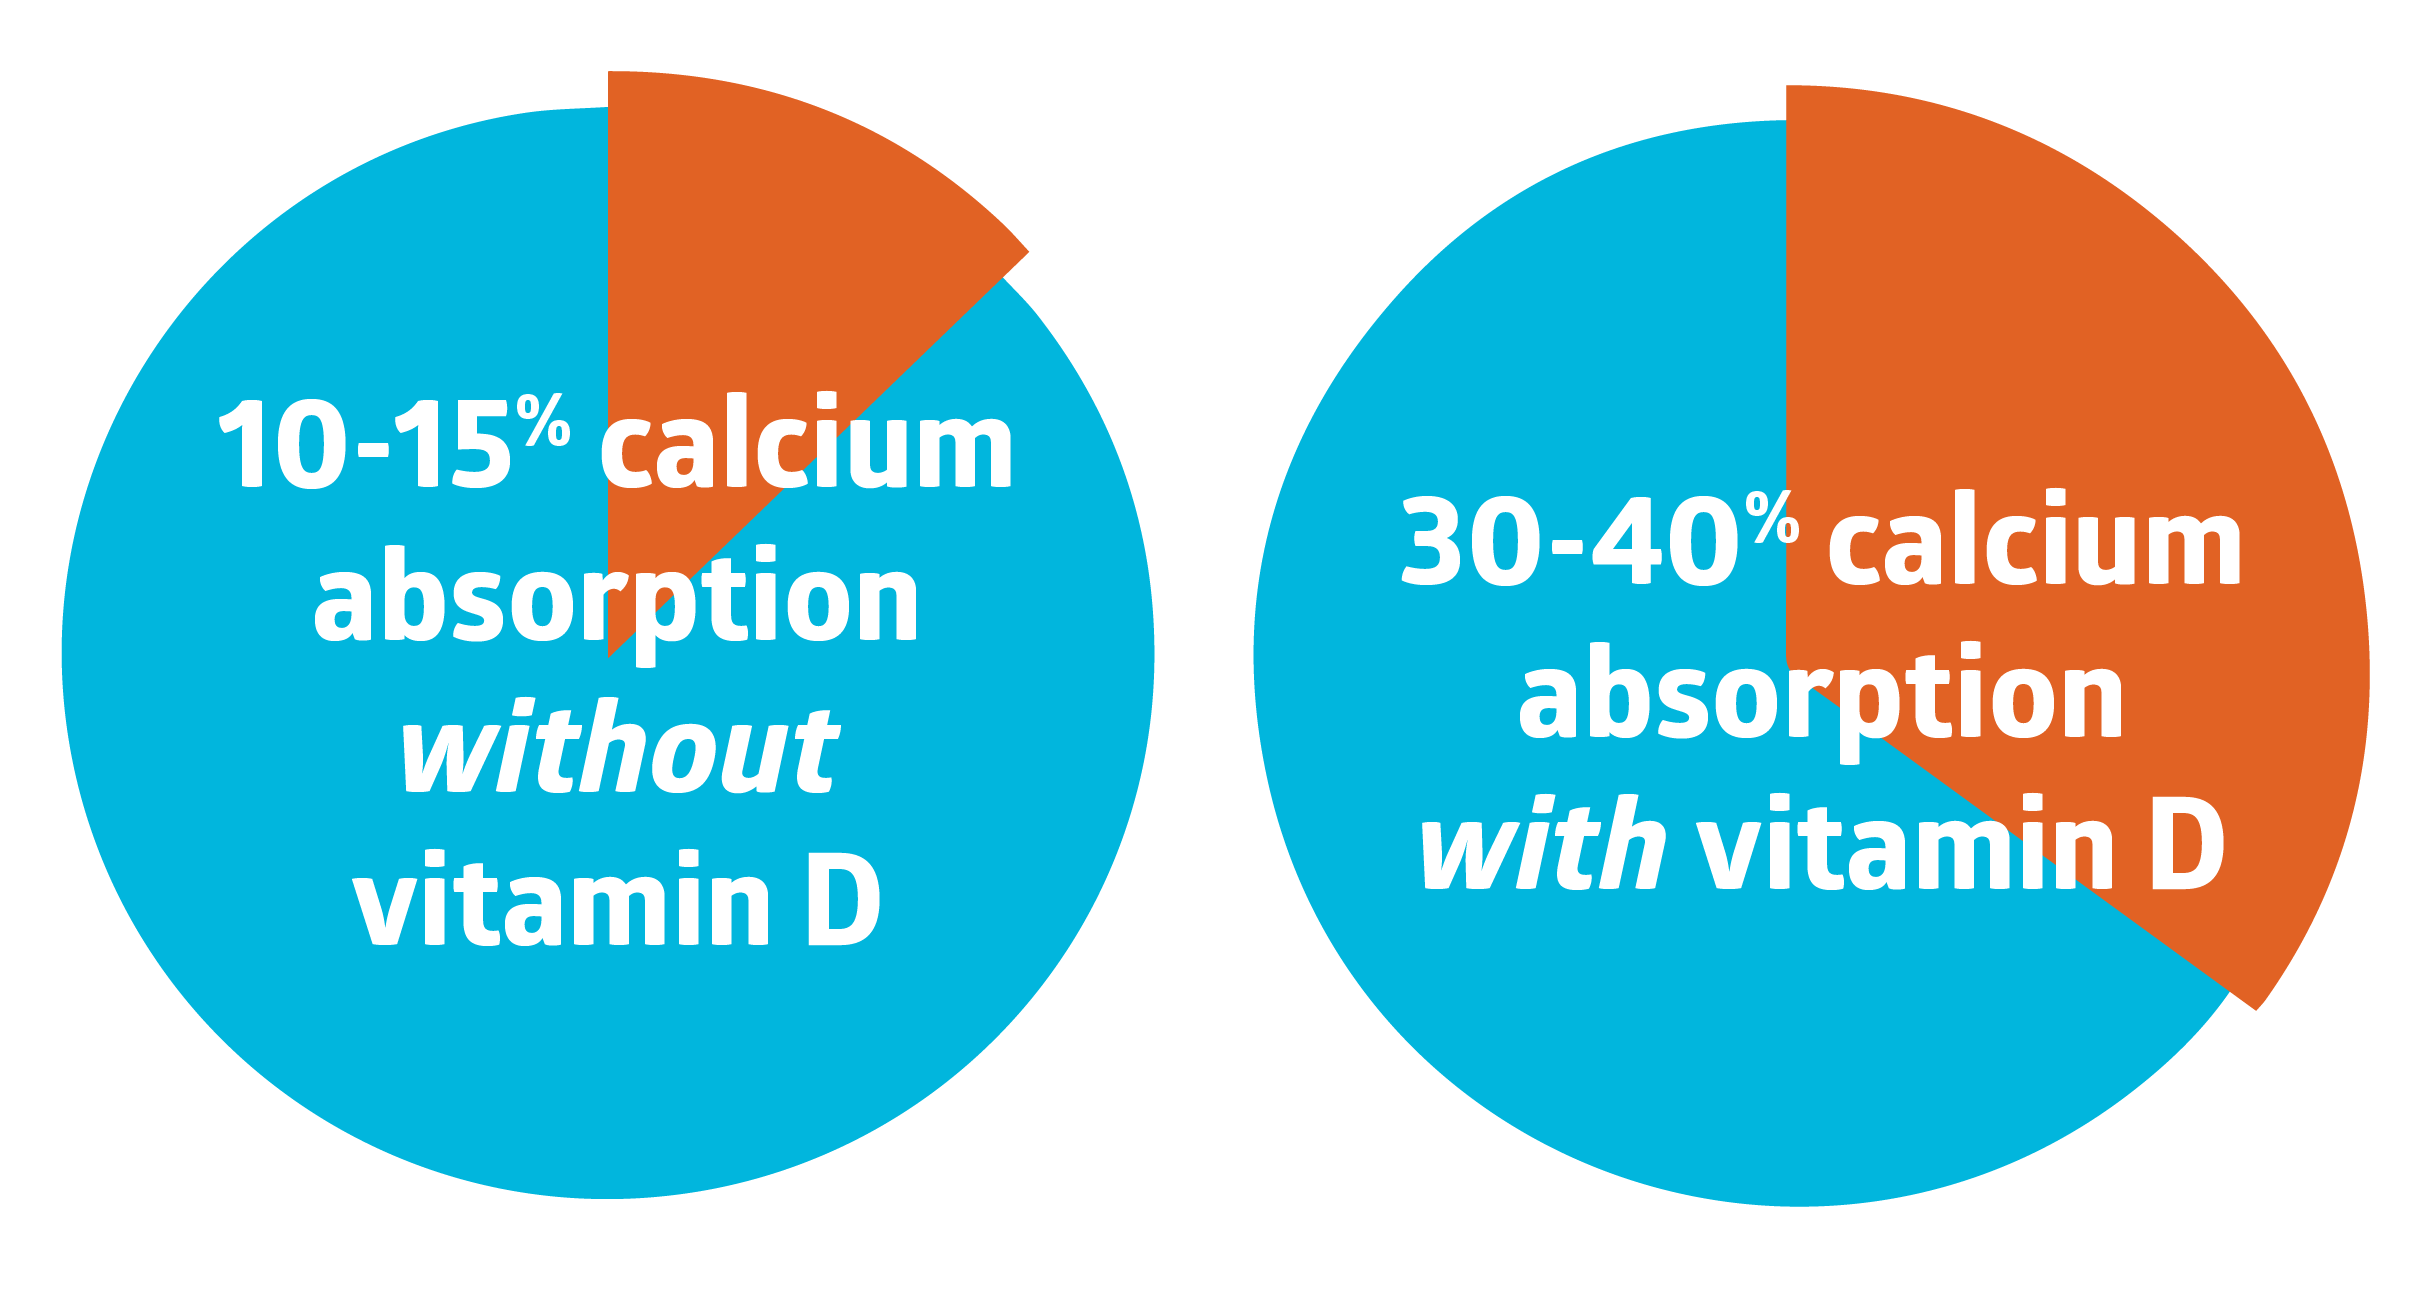 10-15% Calcium absorption without Vitamin D; 100% calcium absorption with Vitamin D